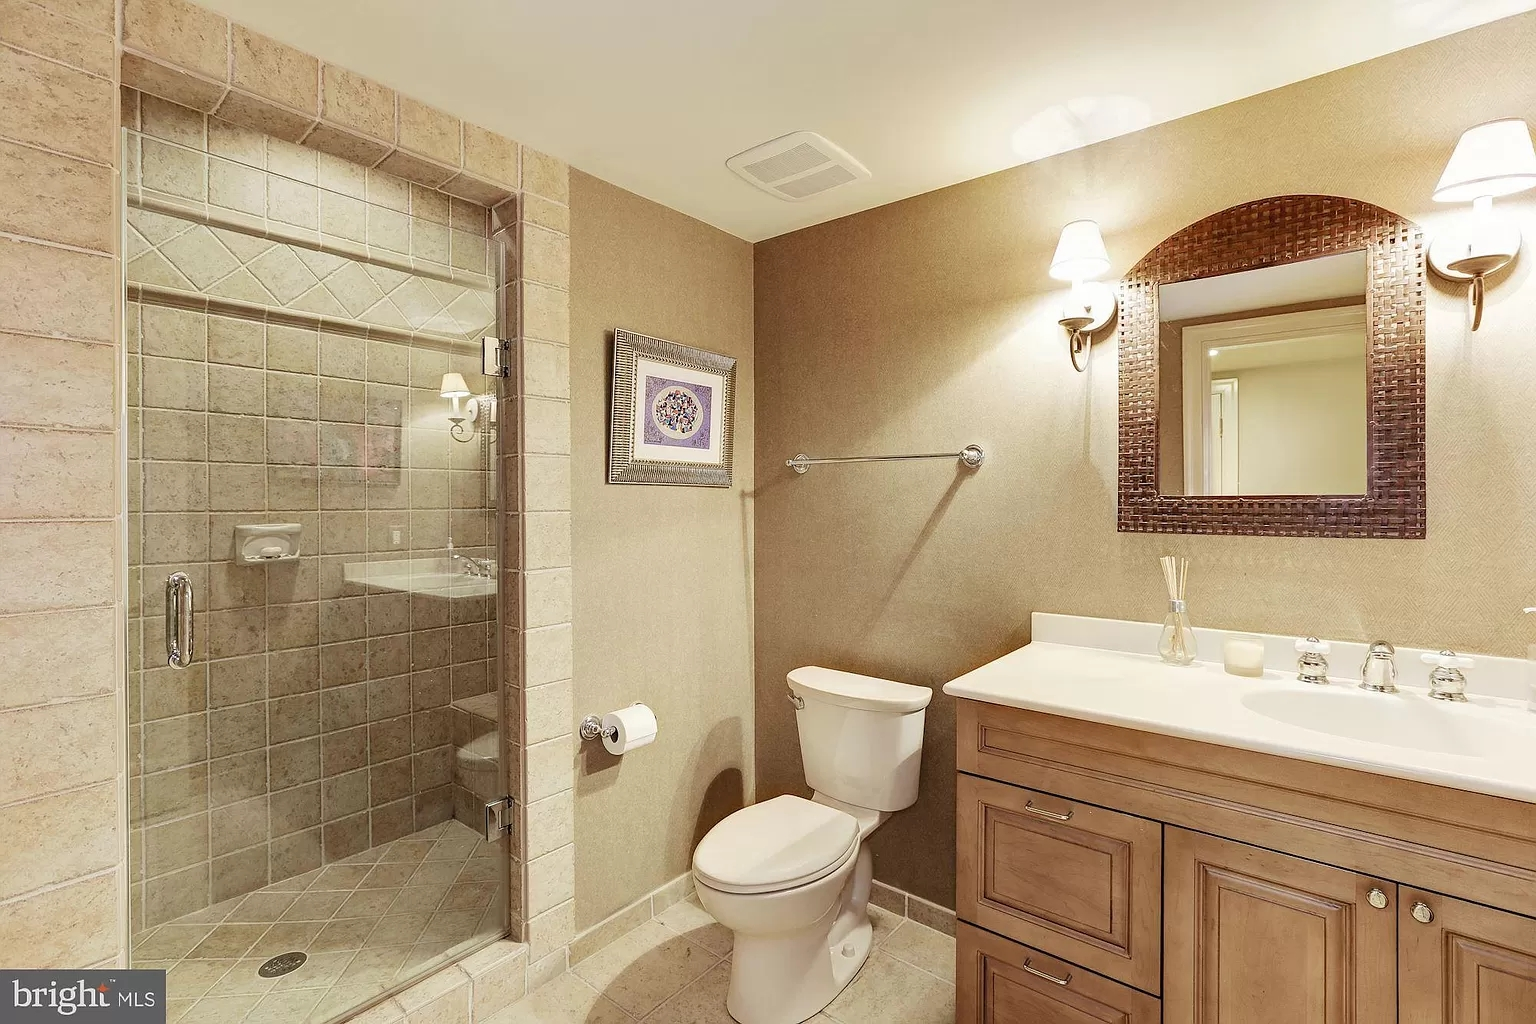 Small Bathroom Designs 2020 | Pictures Ideas & Colors